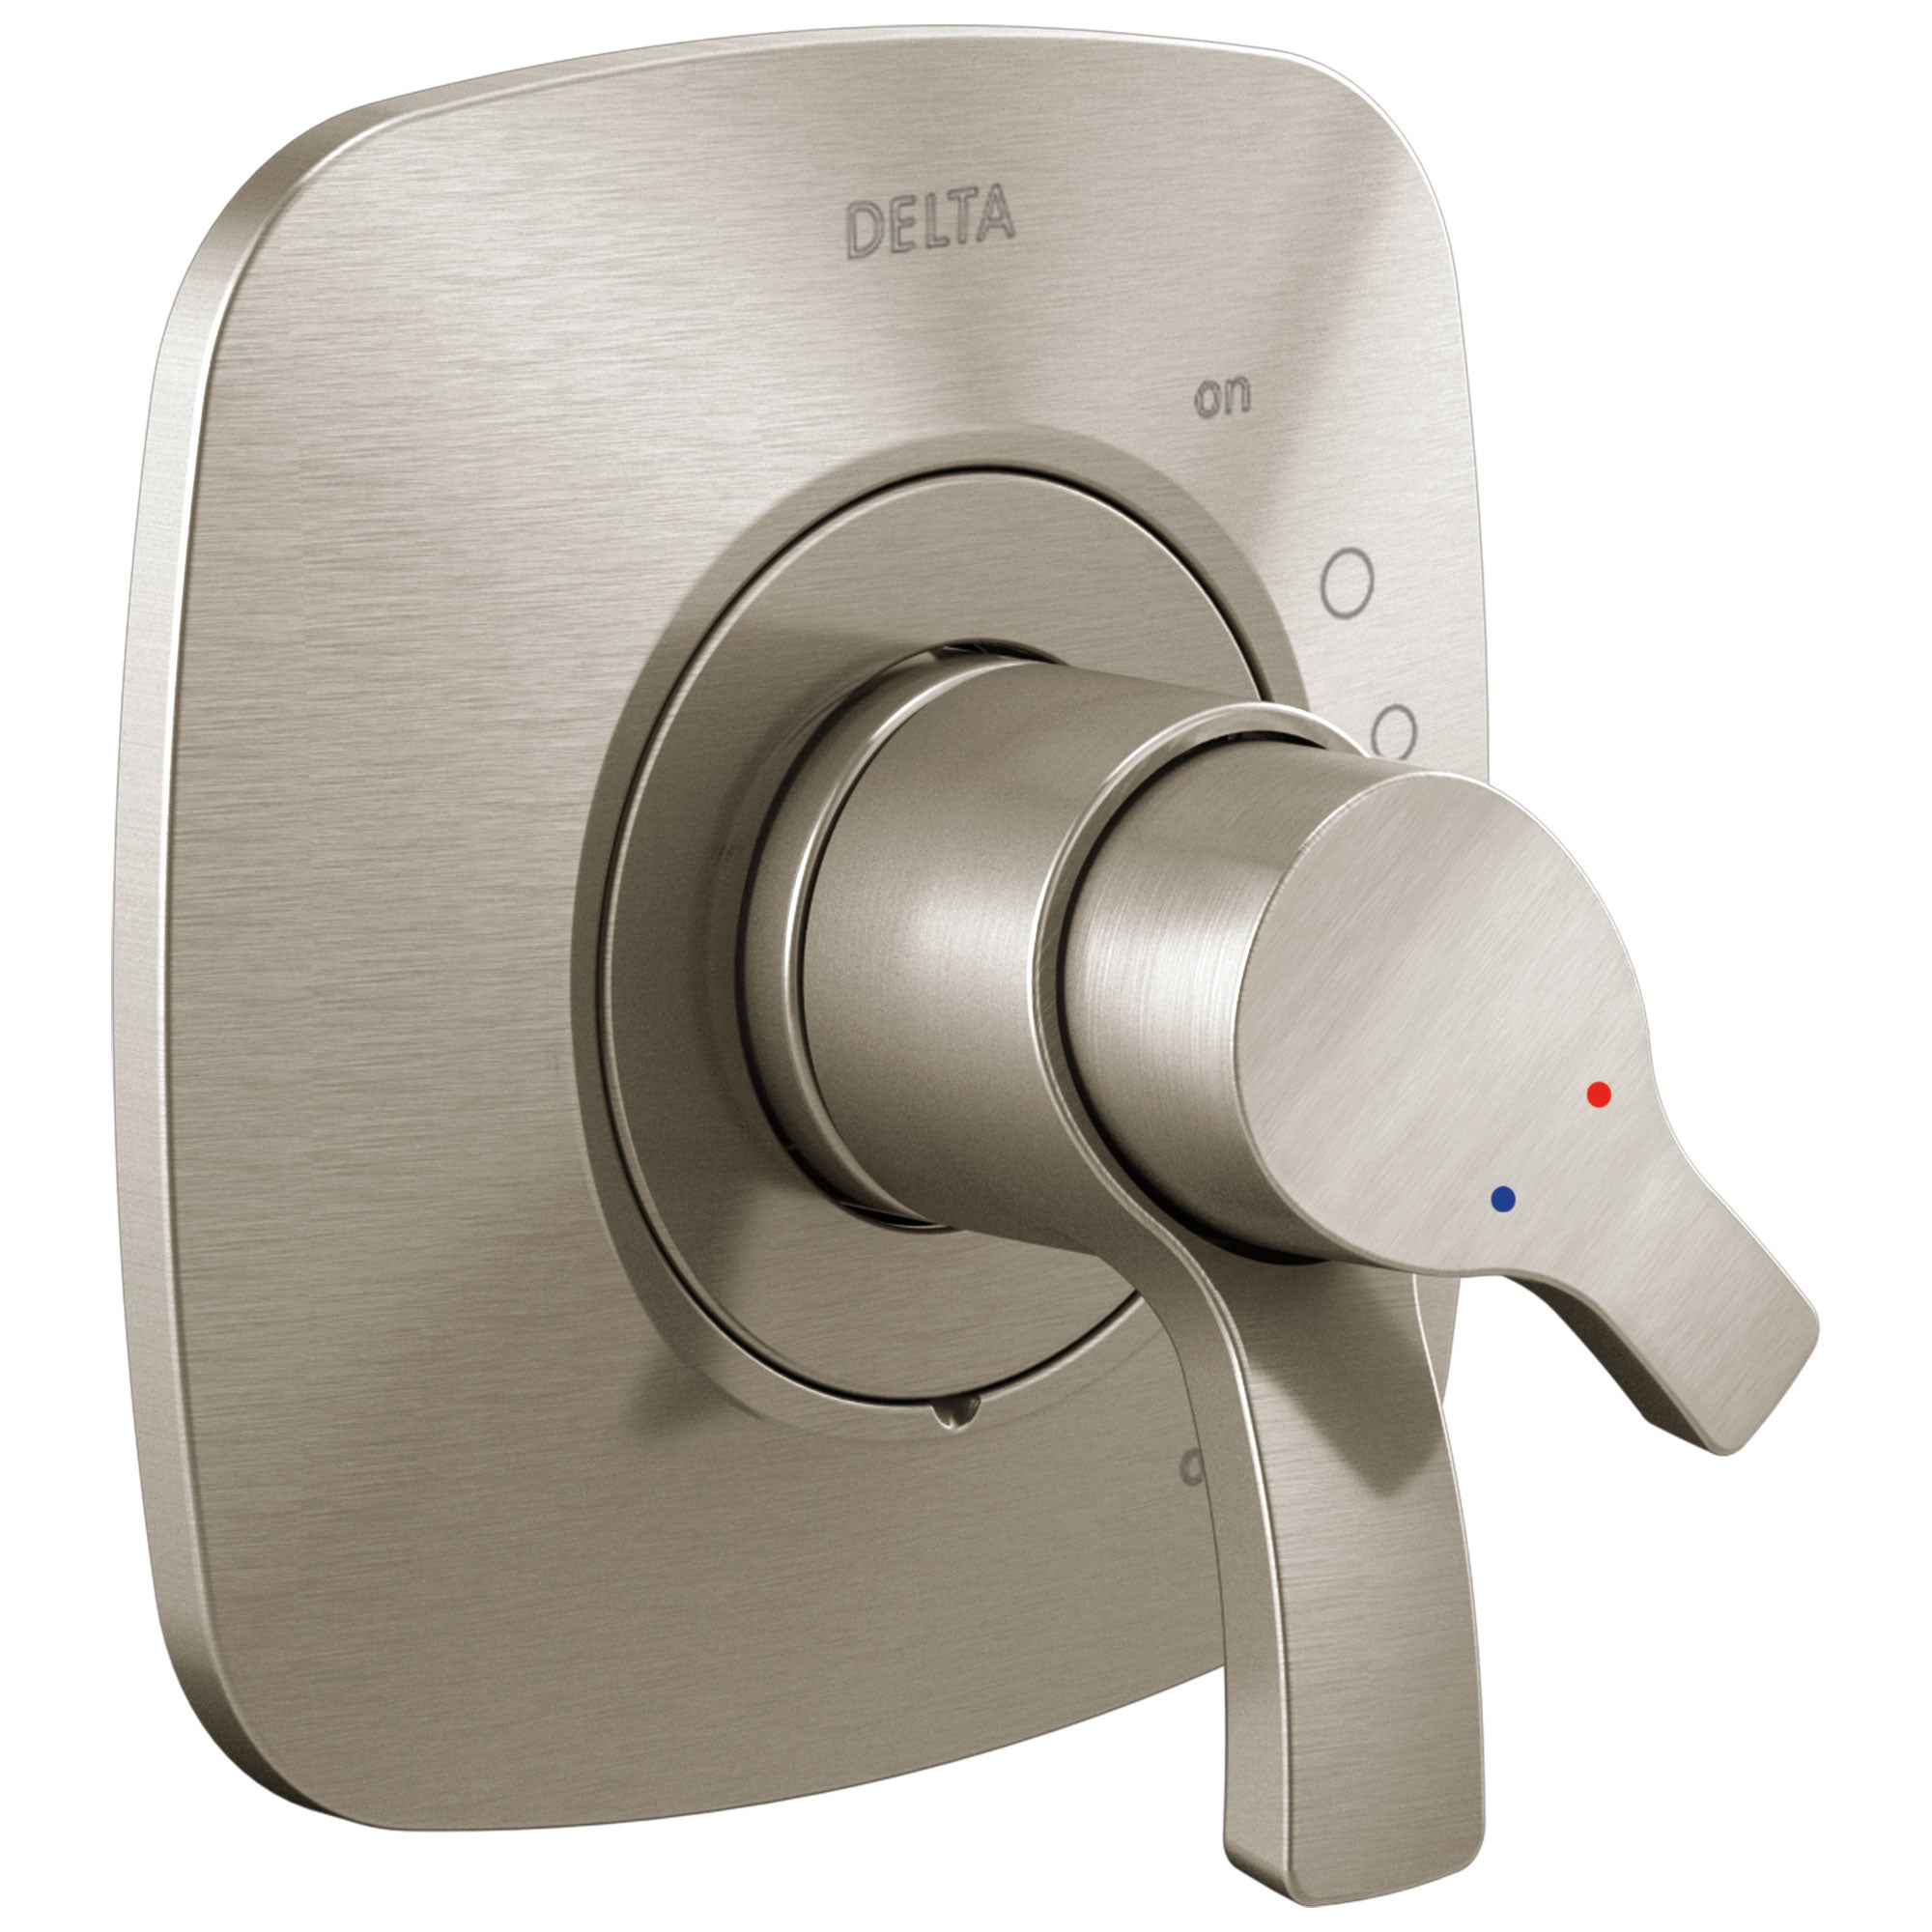 Delta Tesla Collection Stainless Steel Finish Monitor 17 Dual Temperature and Water Pressure Shower Faucet Control Handle Trim (Requires Valve) 732788